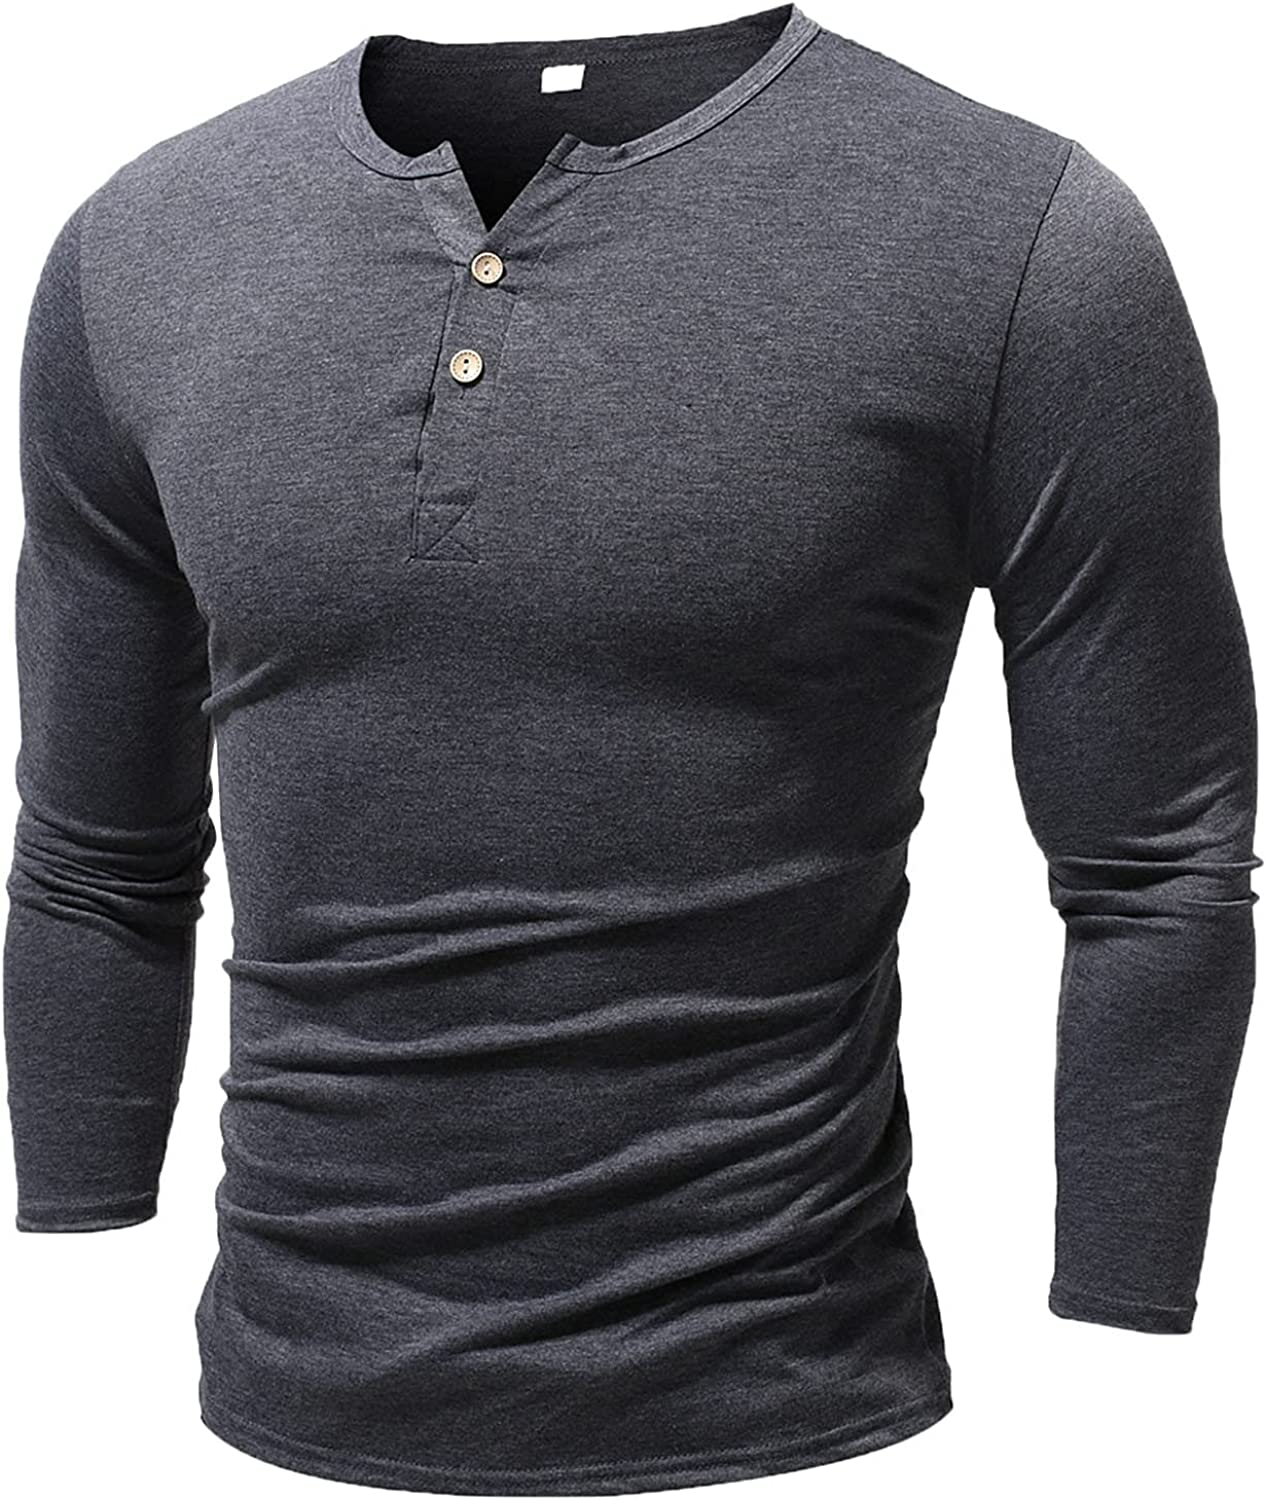 Men's Basic T-Shirt Casual Long Sleeve Crew Neck Tees Top Slim Fit Solid Color Button Fashion Shirts Blouse